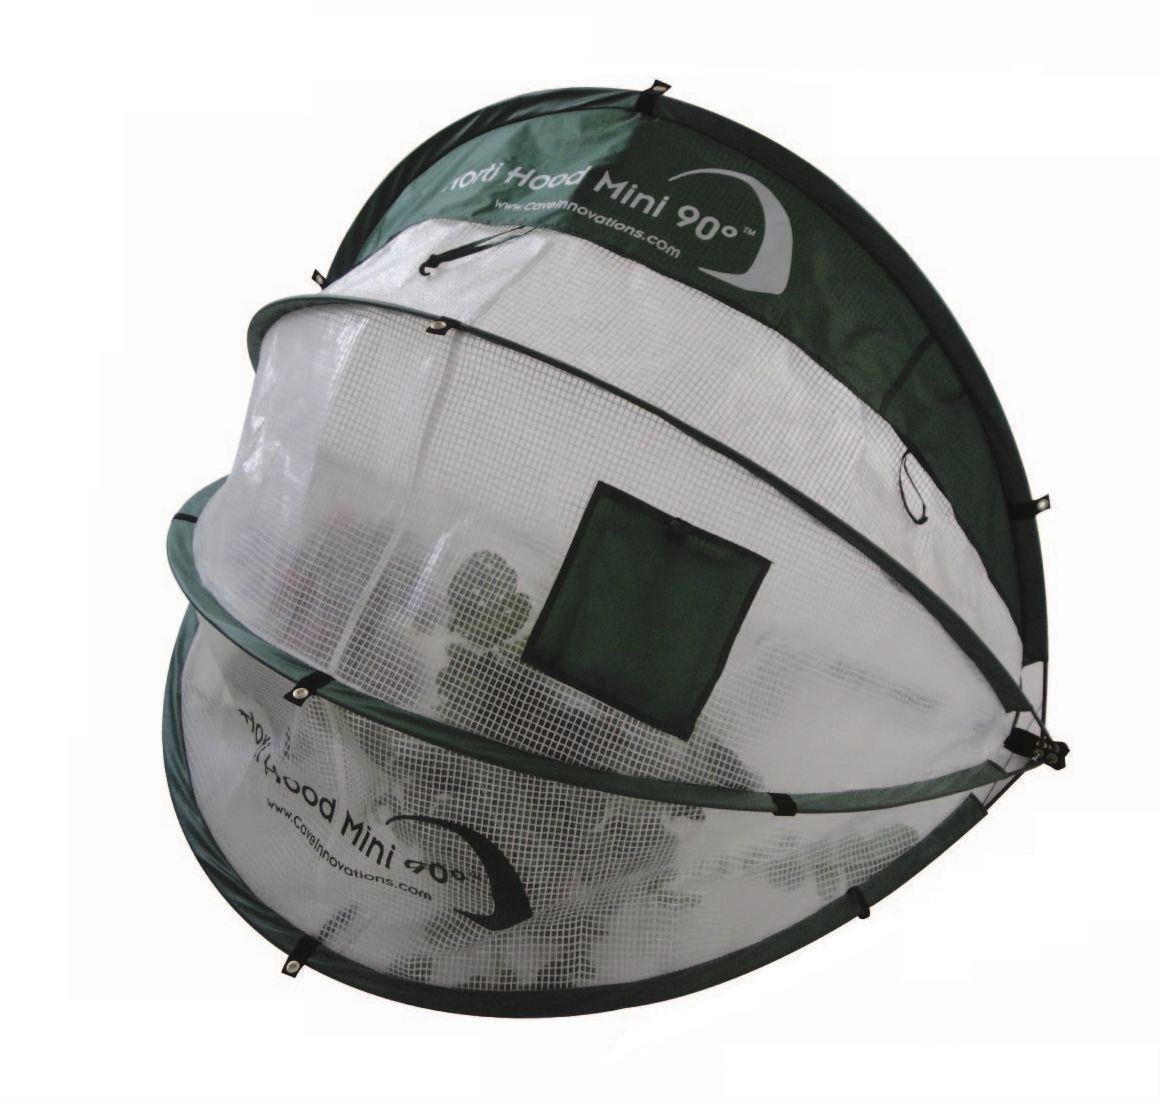 Image of Horti Hood Mini 90?? Wall Mounted Folding Cloche.